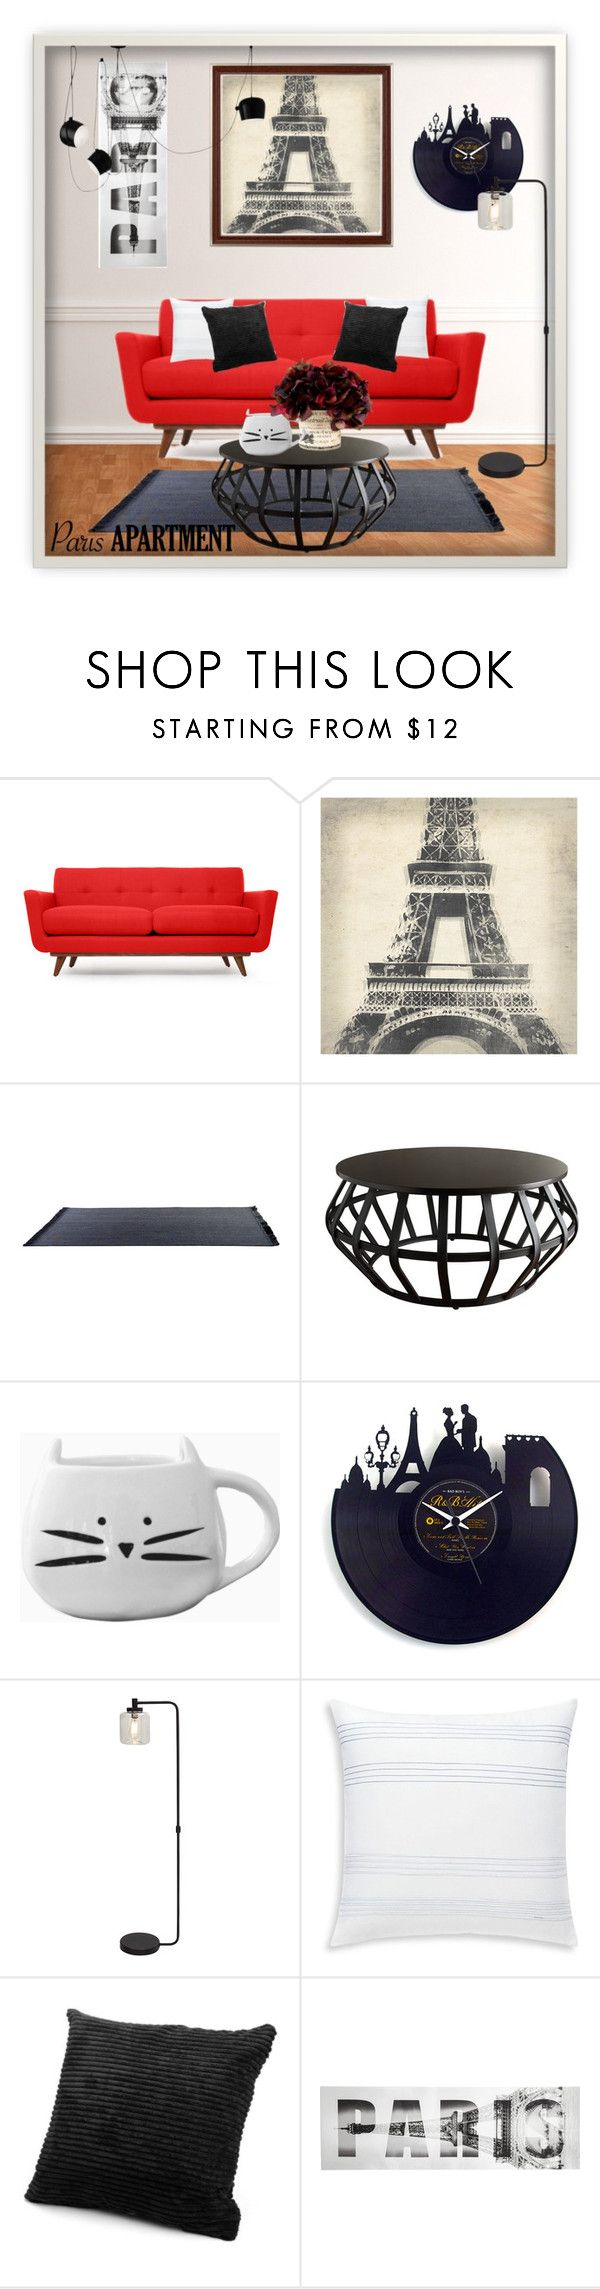 """""""The Perfect Paris Apartment"""" by whispering-shade ❤ liked on Polyvore featuring interior, interiors, interior design, home, home decor, interior decorating, Thrive, Leftbank Art, Tribecca Home and Bluebellgray"""